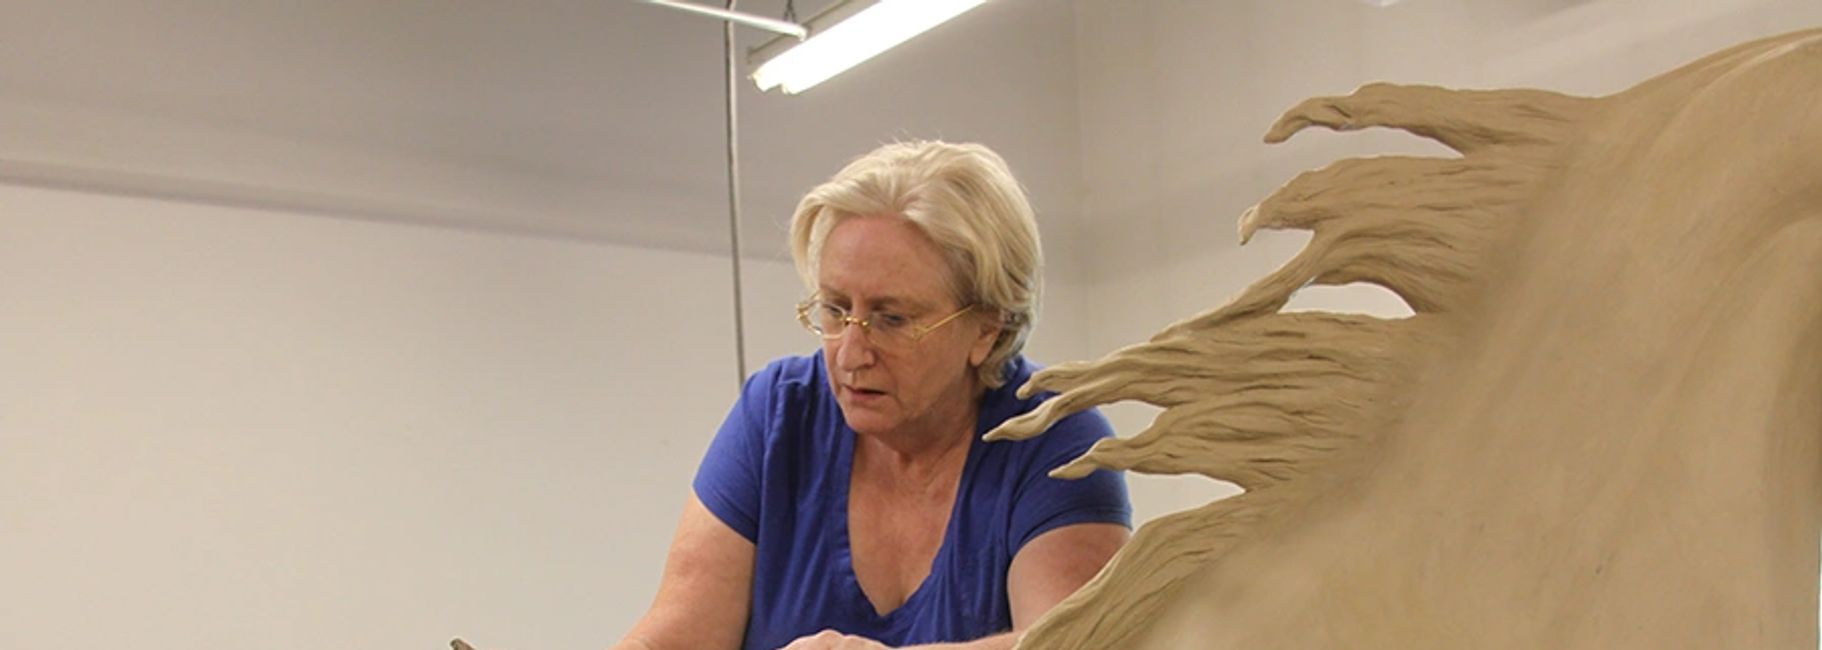 Anne hard at work on a life size equine bronze sculpture commission.